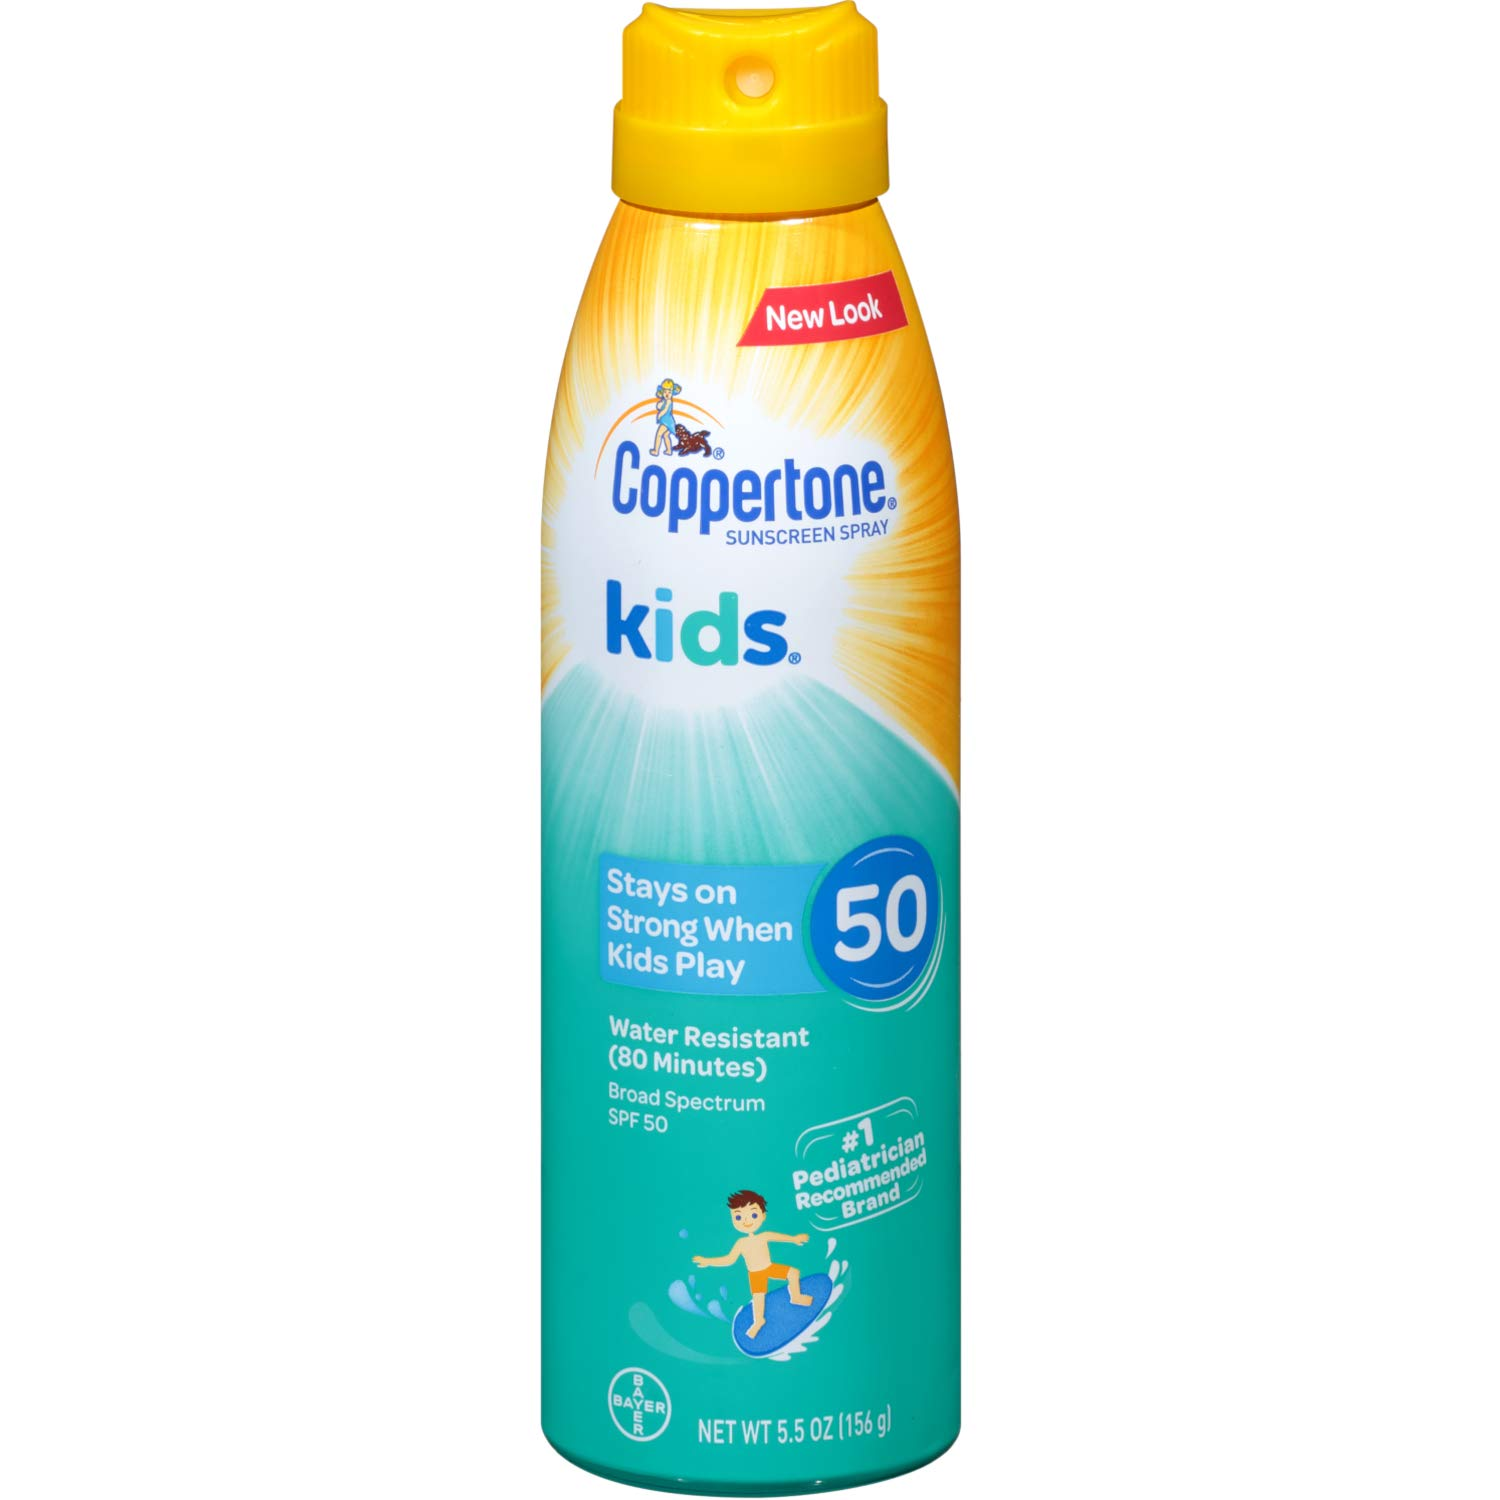 Coppertone Kids Sunscreen Continuous Spray Broad Spectrum SPF 50, 5.5 Ounces Each (10) by Coppertone defend (Image #1)